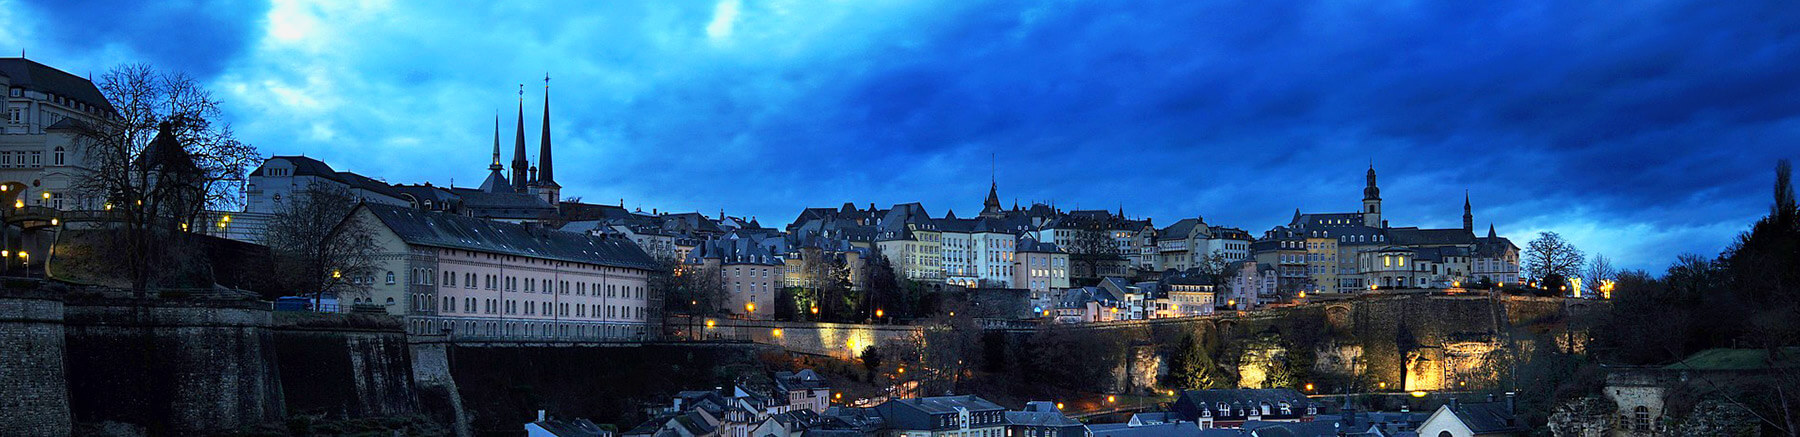 Panoramic view of the city of Luxembourg after sunset